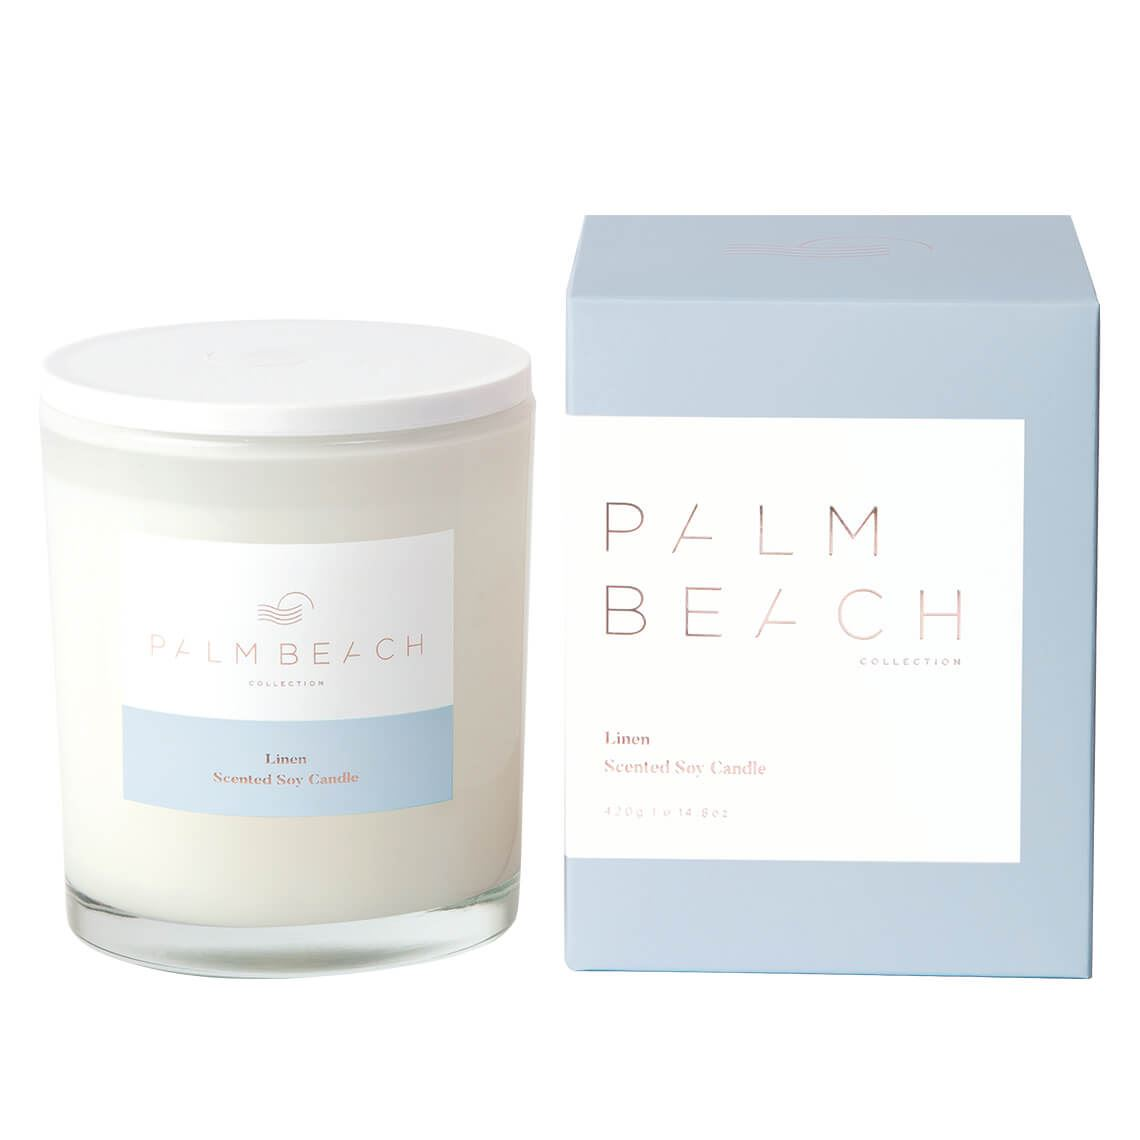 Palm Beachcollection Candle Size W 10cm x D 10cm x H 14cm in Linen Freedom